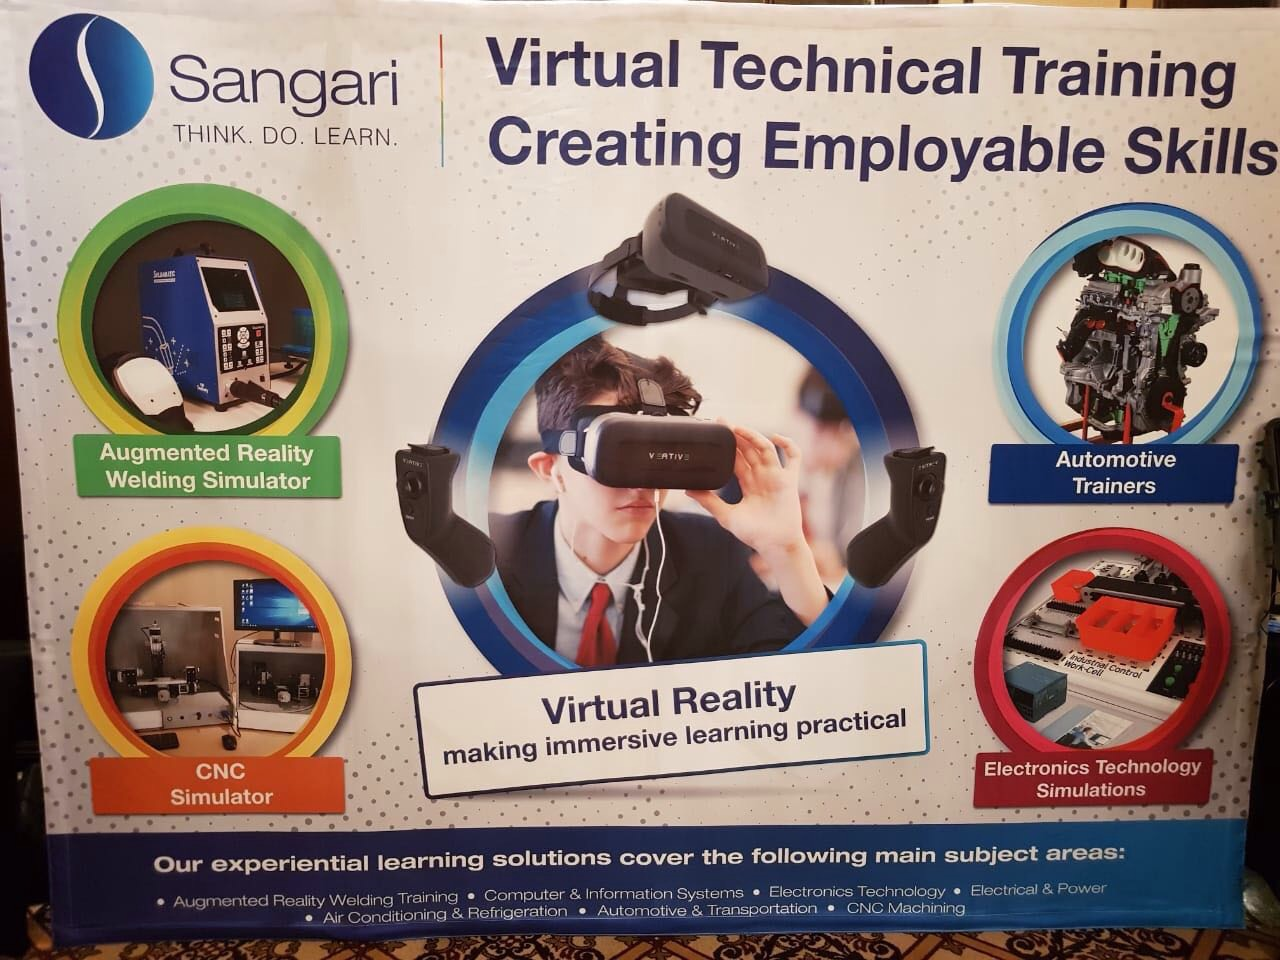 Member Info Adessa Training Simulation For Residential Wiring 4th Edition Software Reality Ar Welding Simulator And A Range Of Virtual Vr Educational Systems Schools The Veative Interactive